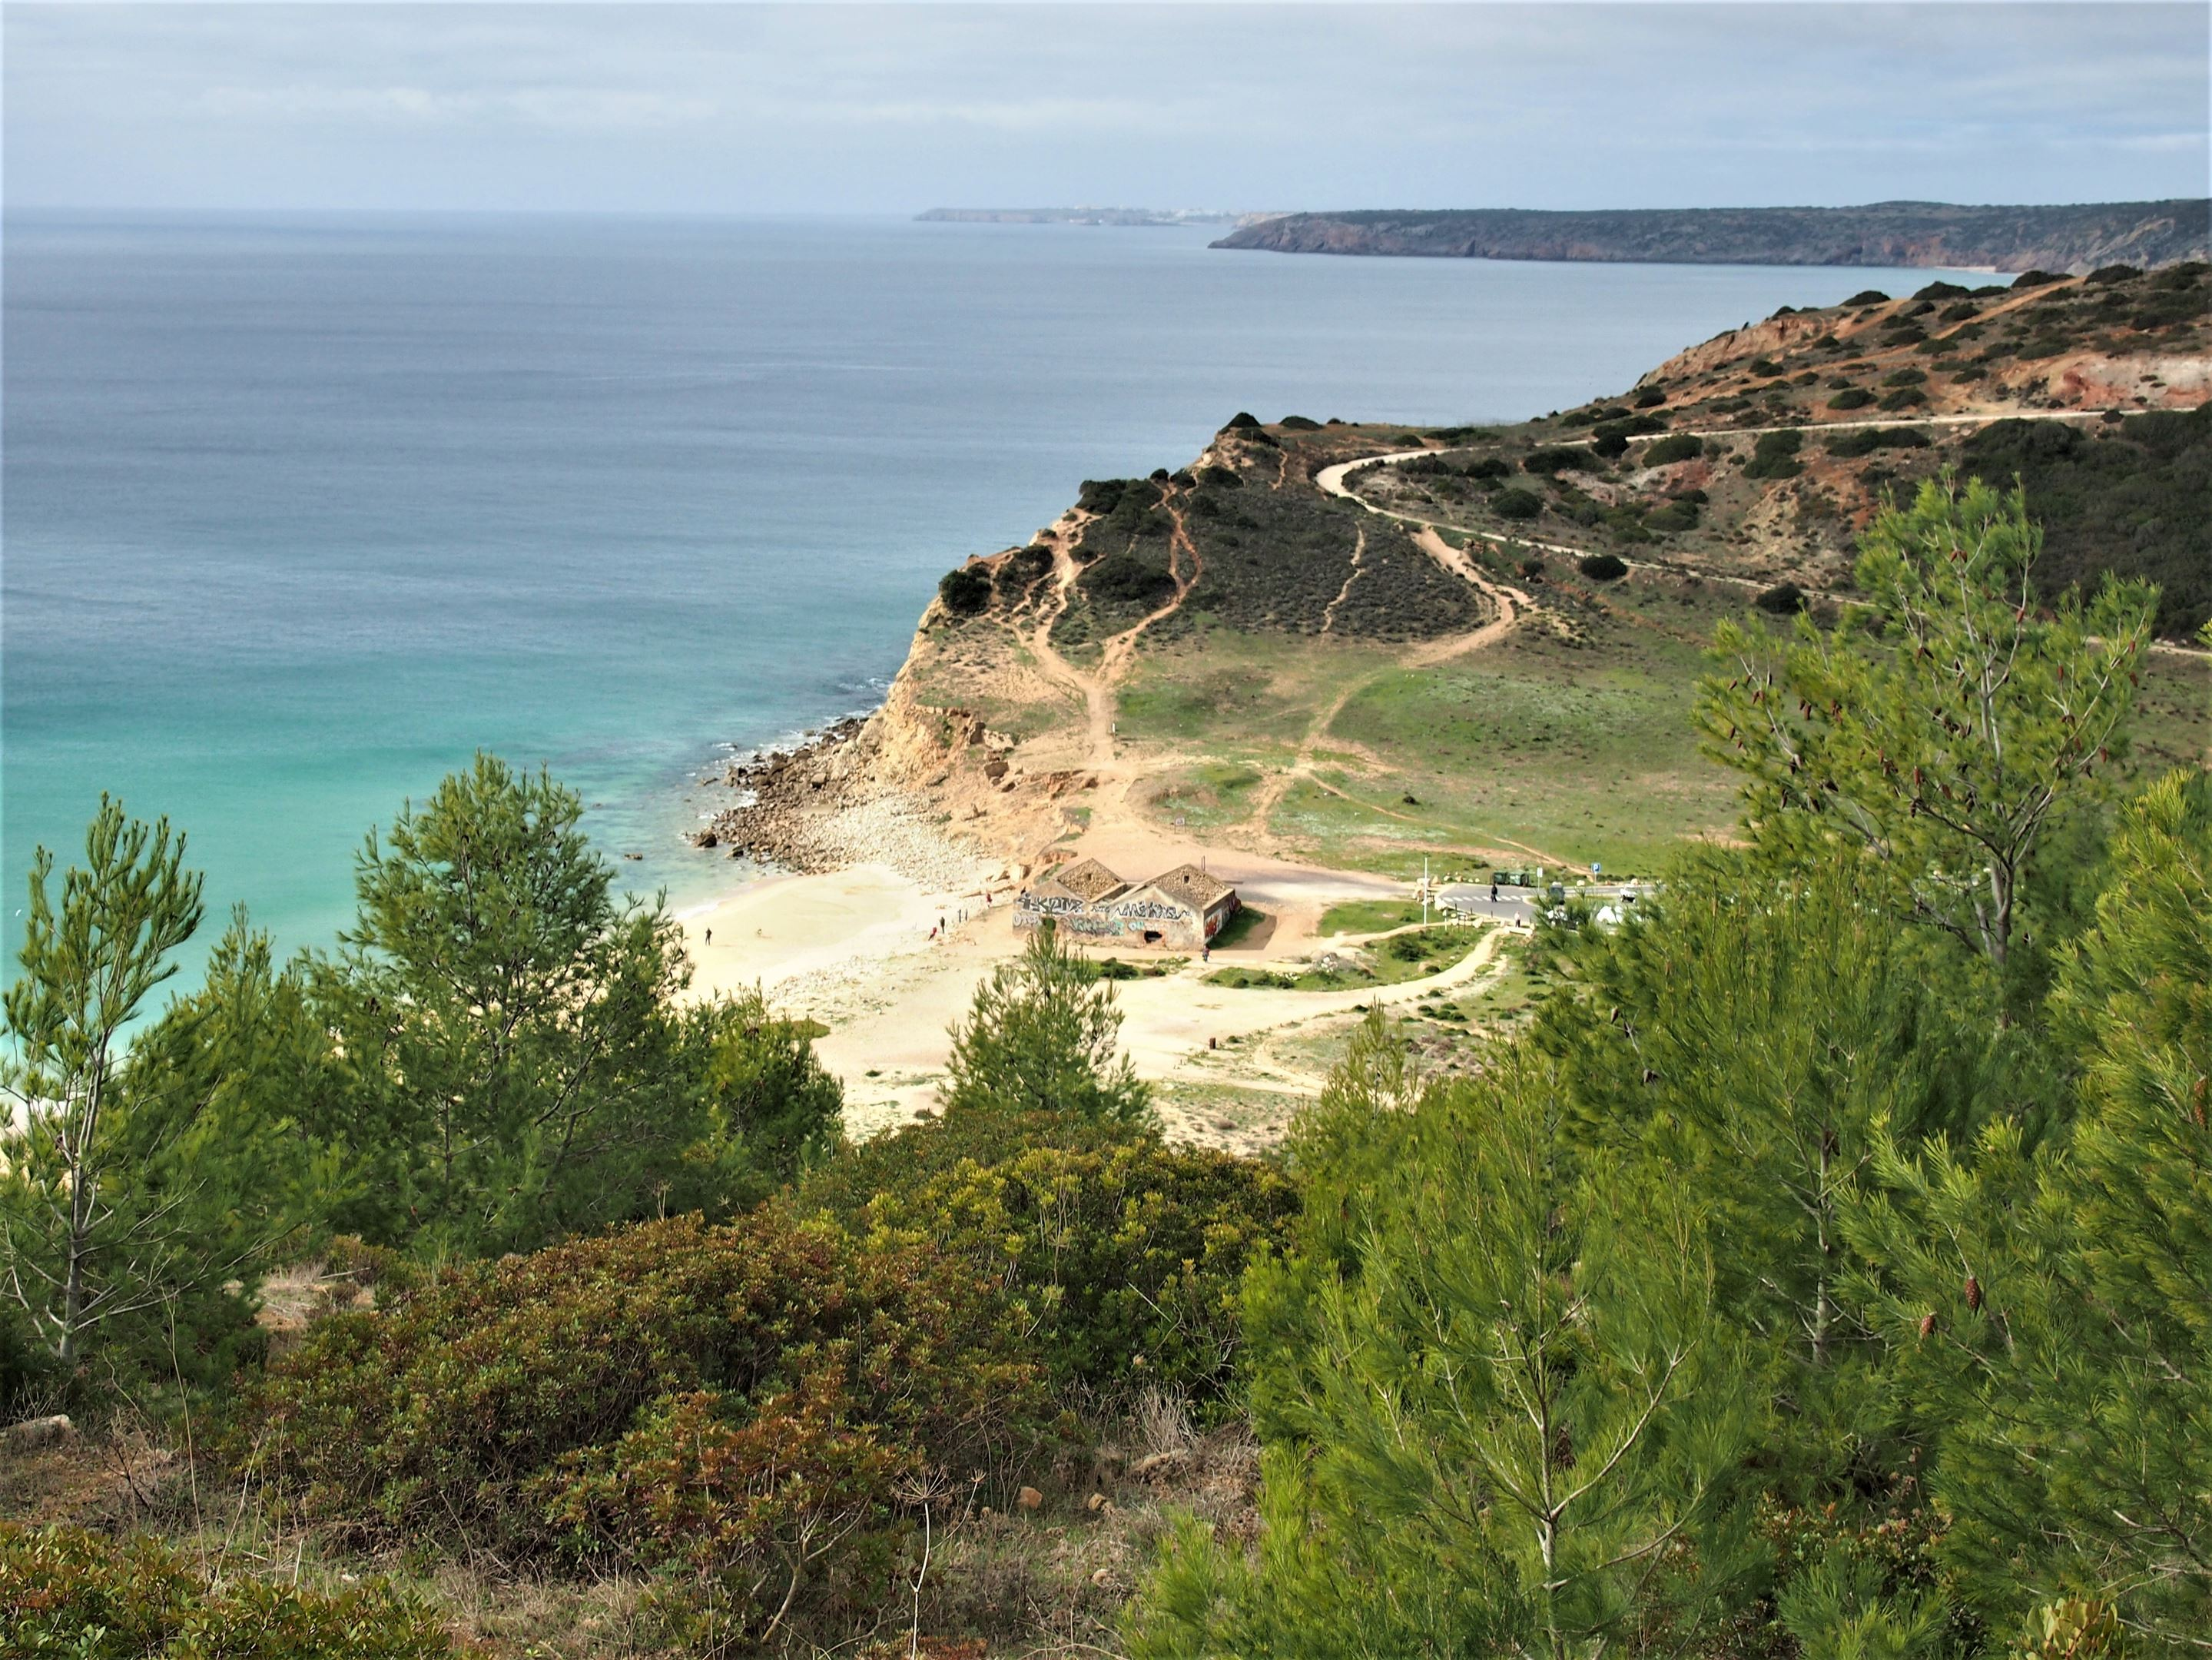 Looking down onto Praia Boco do Rio, in between the villages of Burgau and Salema in the Vila do Bispo region of the Algarve